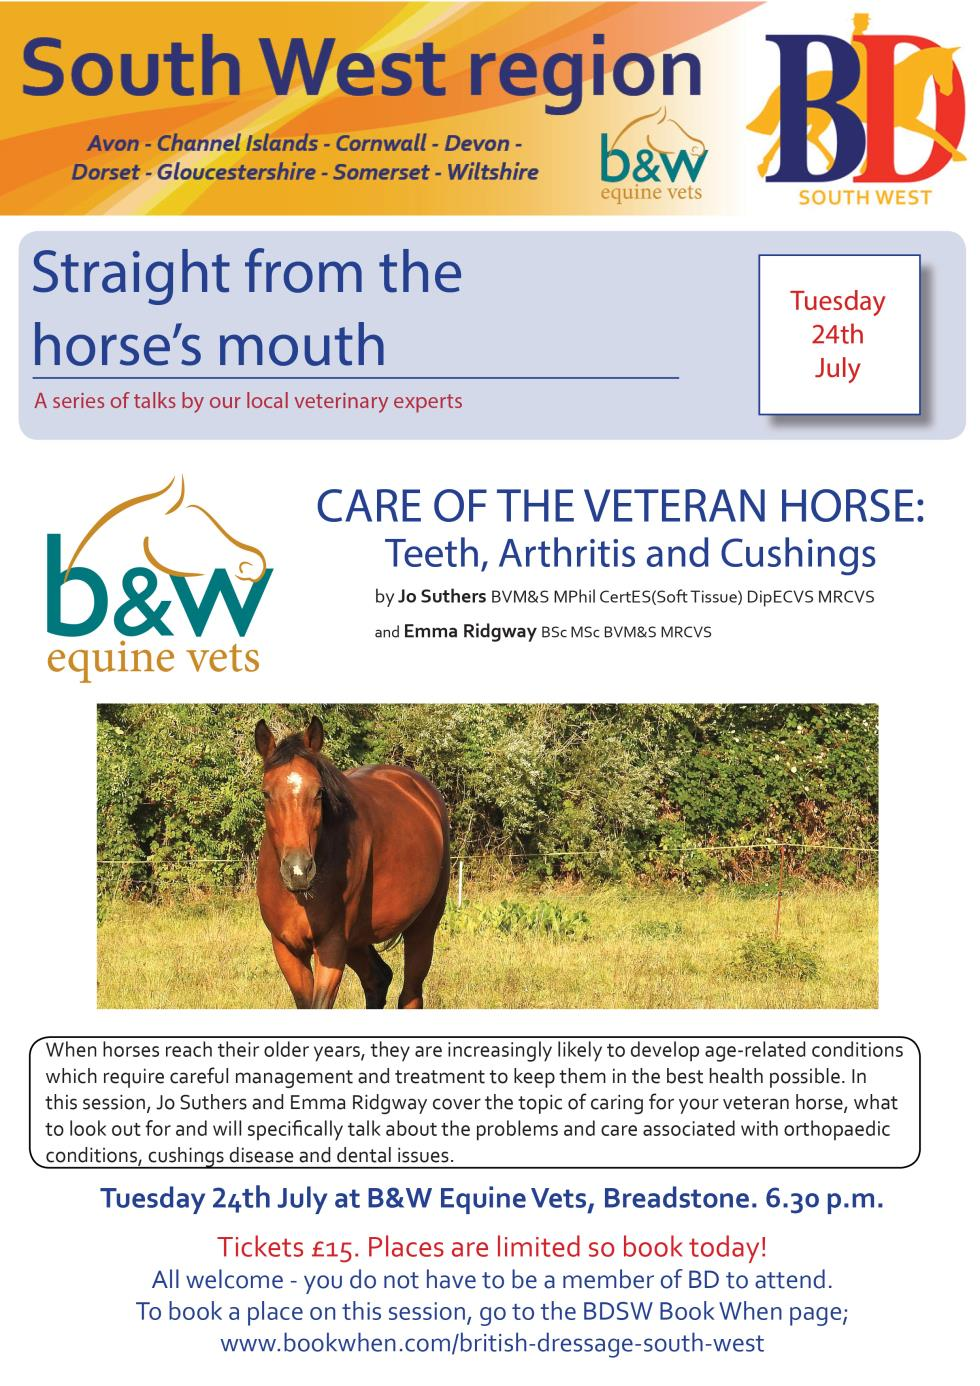 Care of the Veteran Horse Lecture